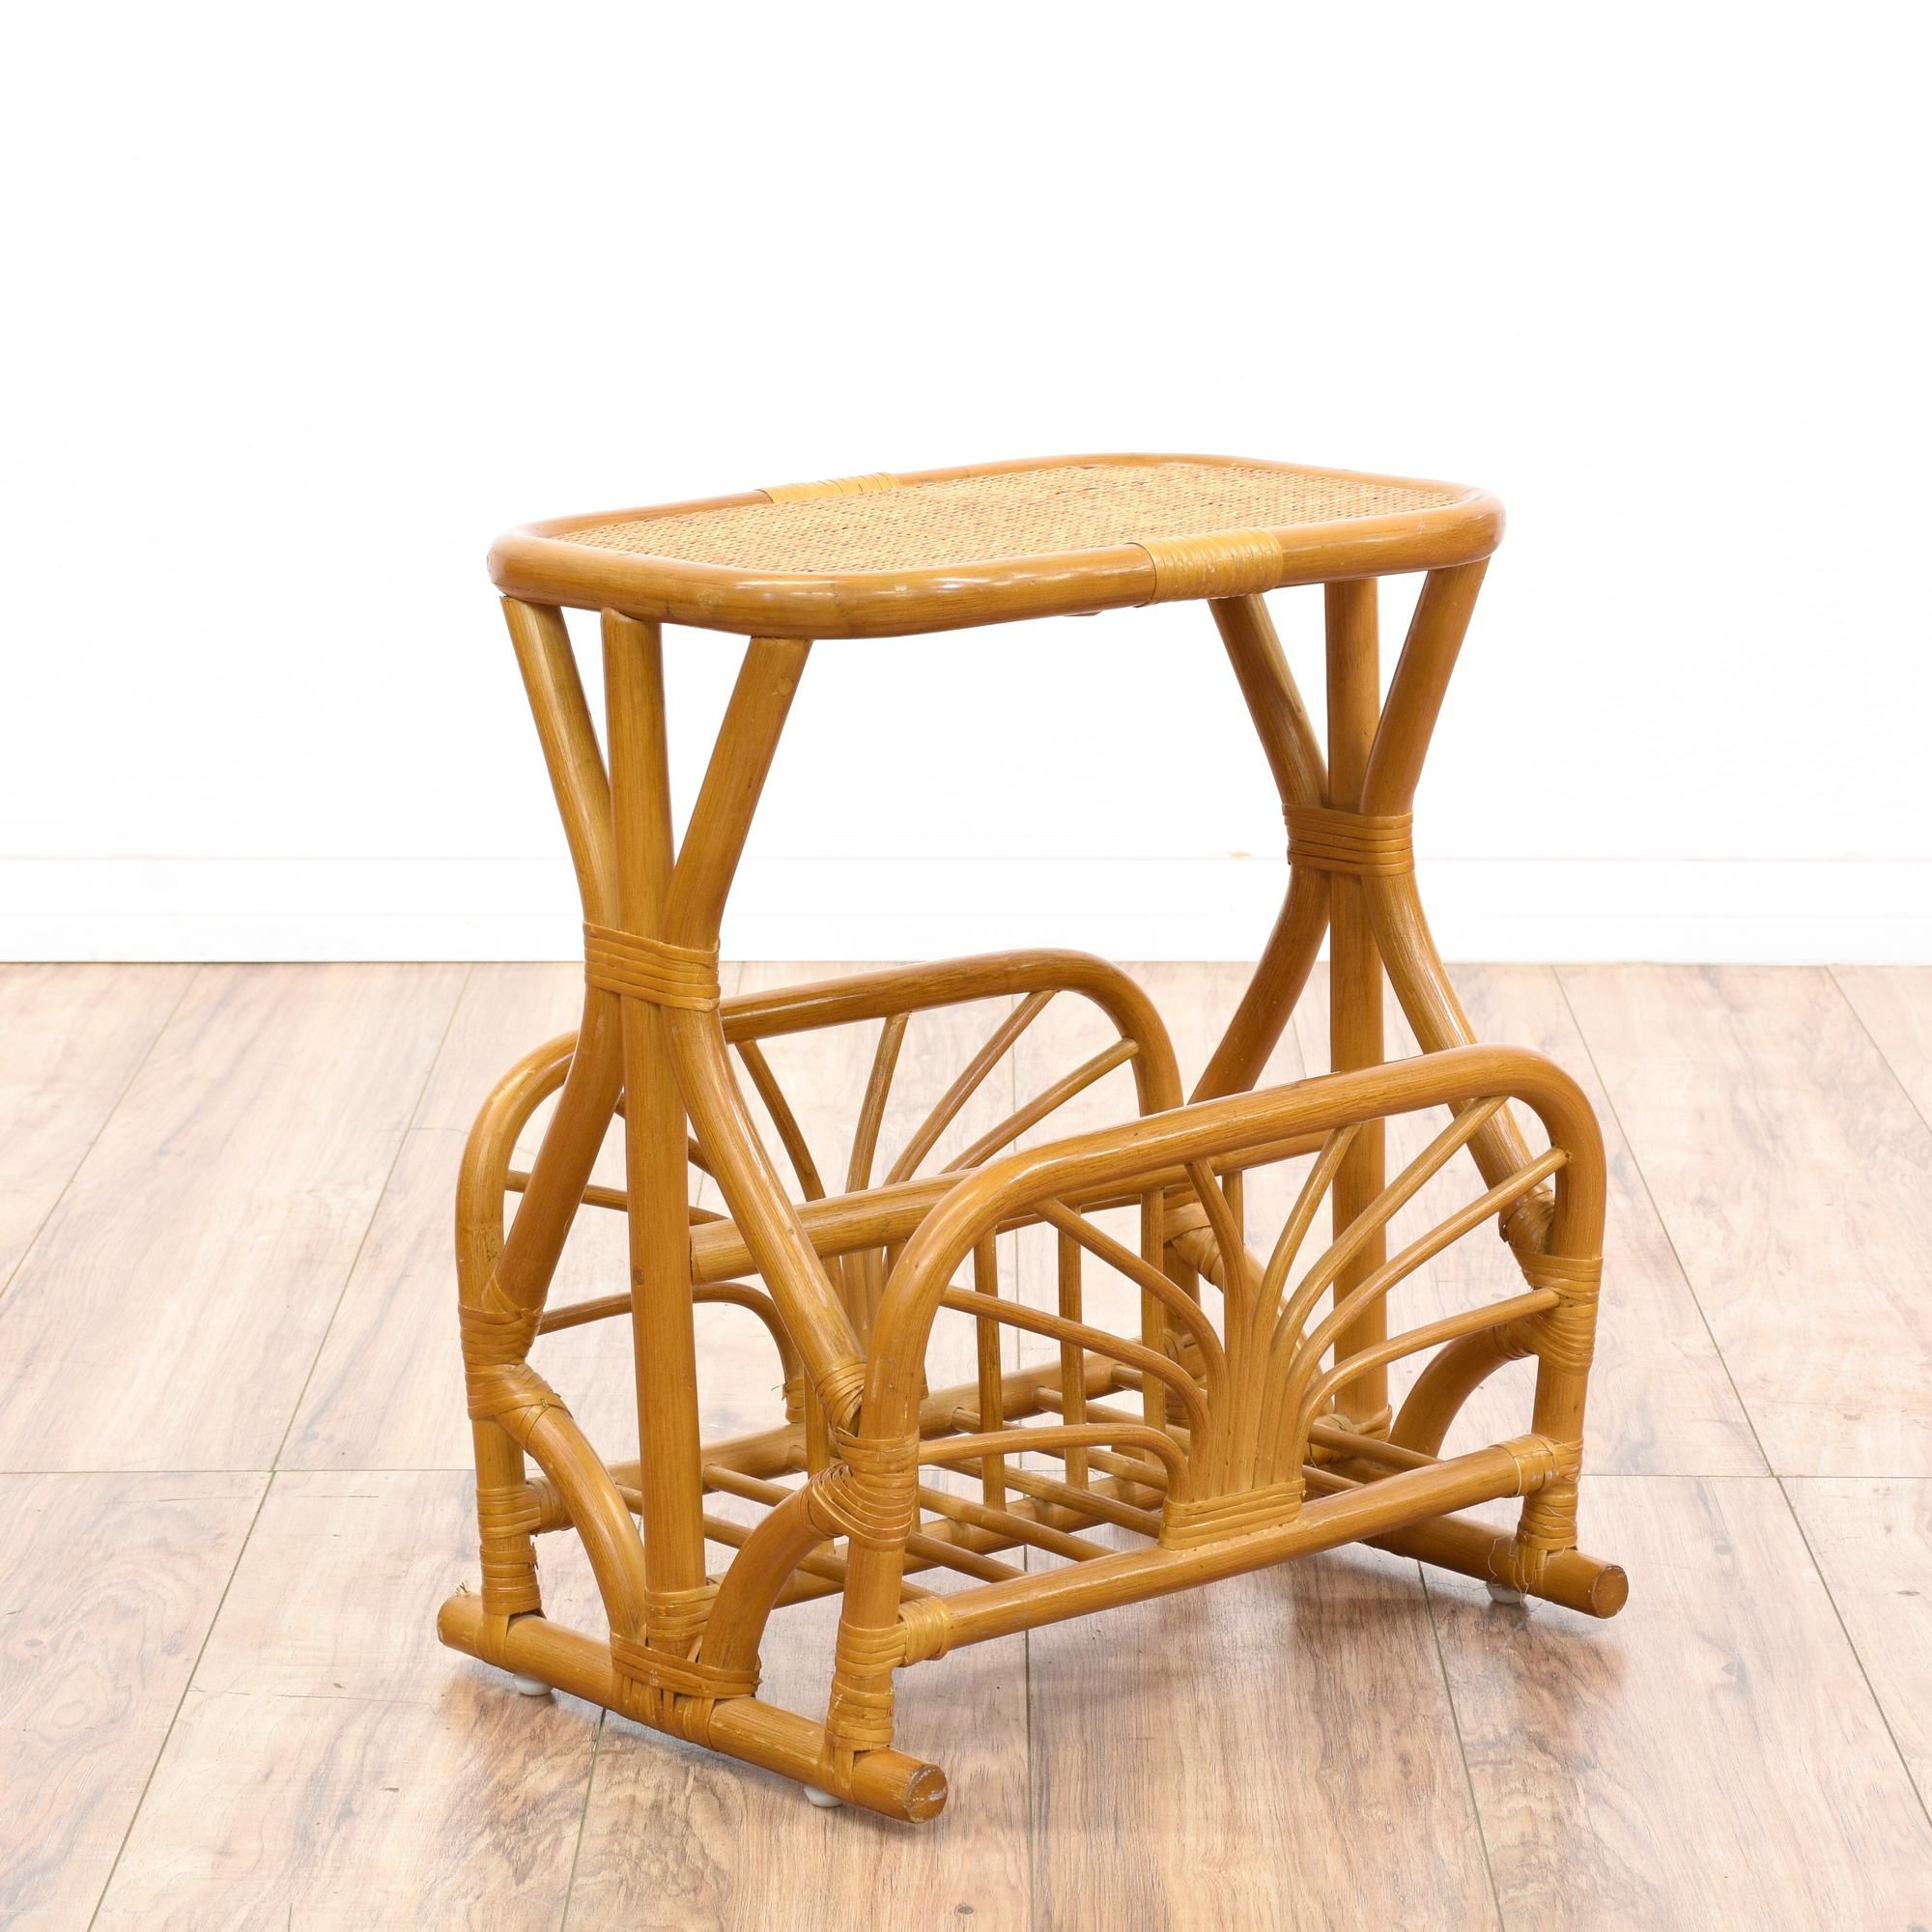 This Tropical Magazine Rack Side Table Is Featured In A Rattan With A  Glossy Light Wood Finish. This Bohemian End Table Has A Bottom Magazine  Rack With A ...